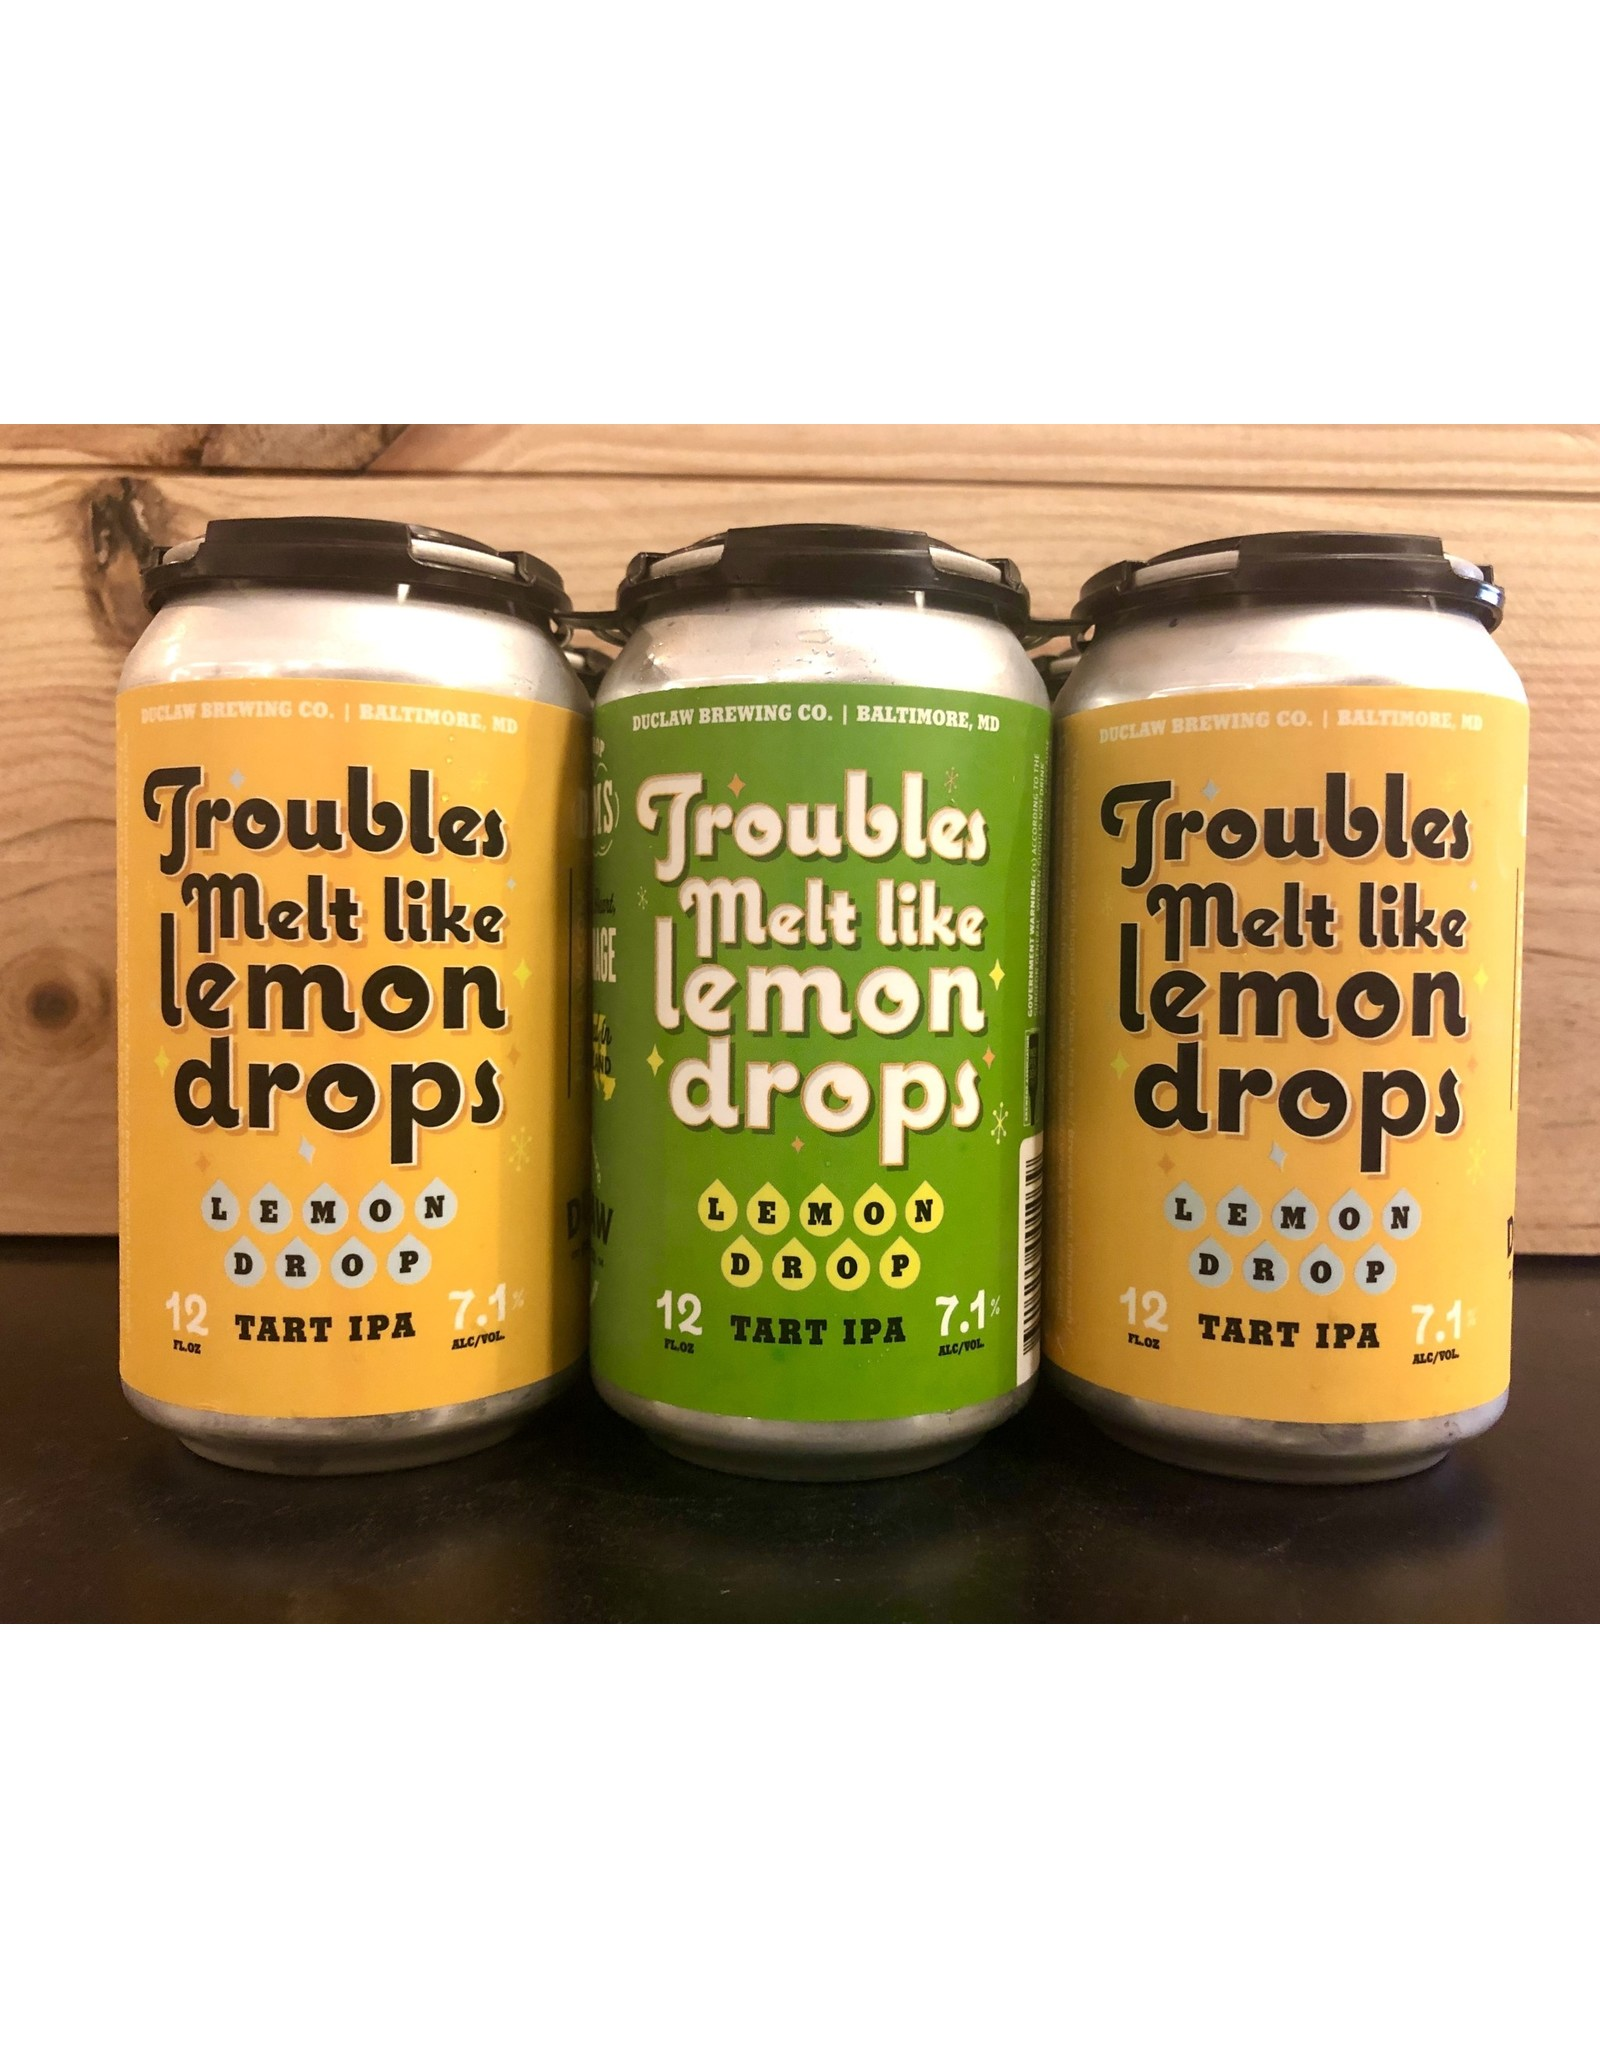 Duclaw Trouble Melt Like Lemon Drops - 6x12 oz.